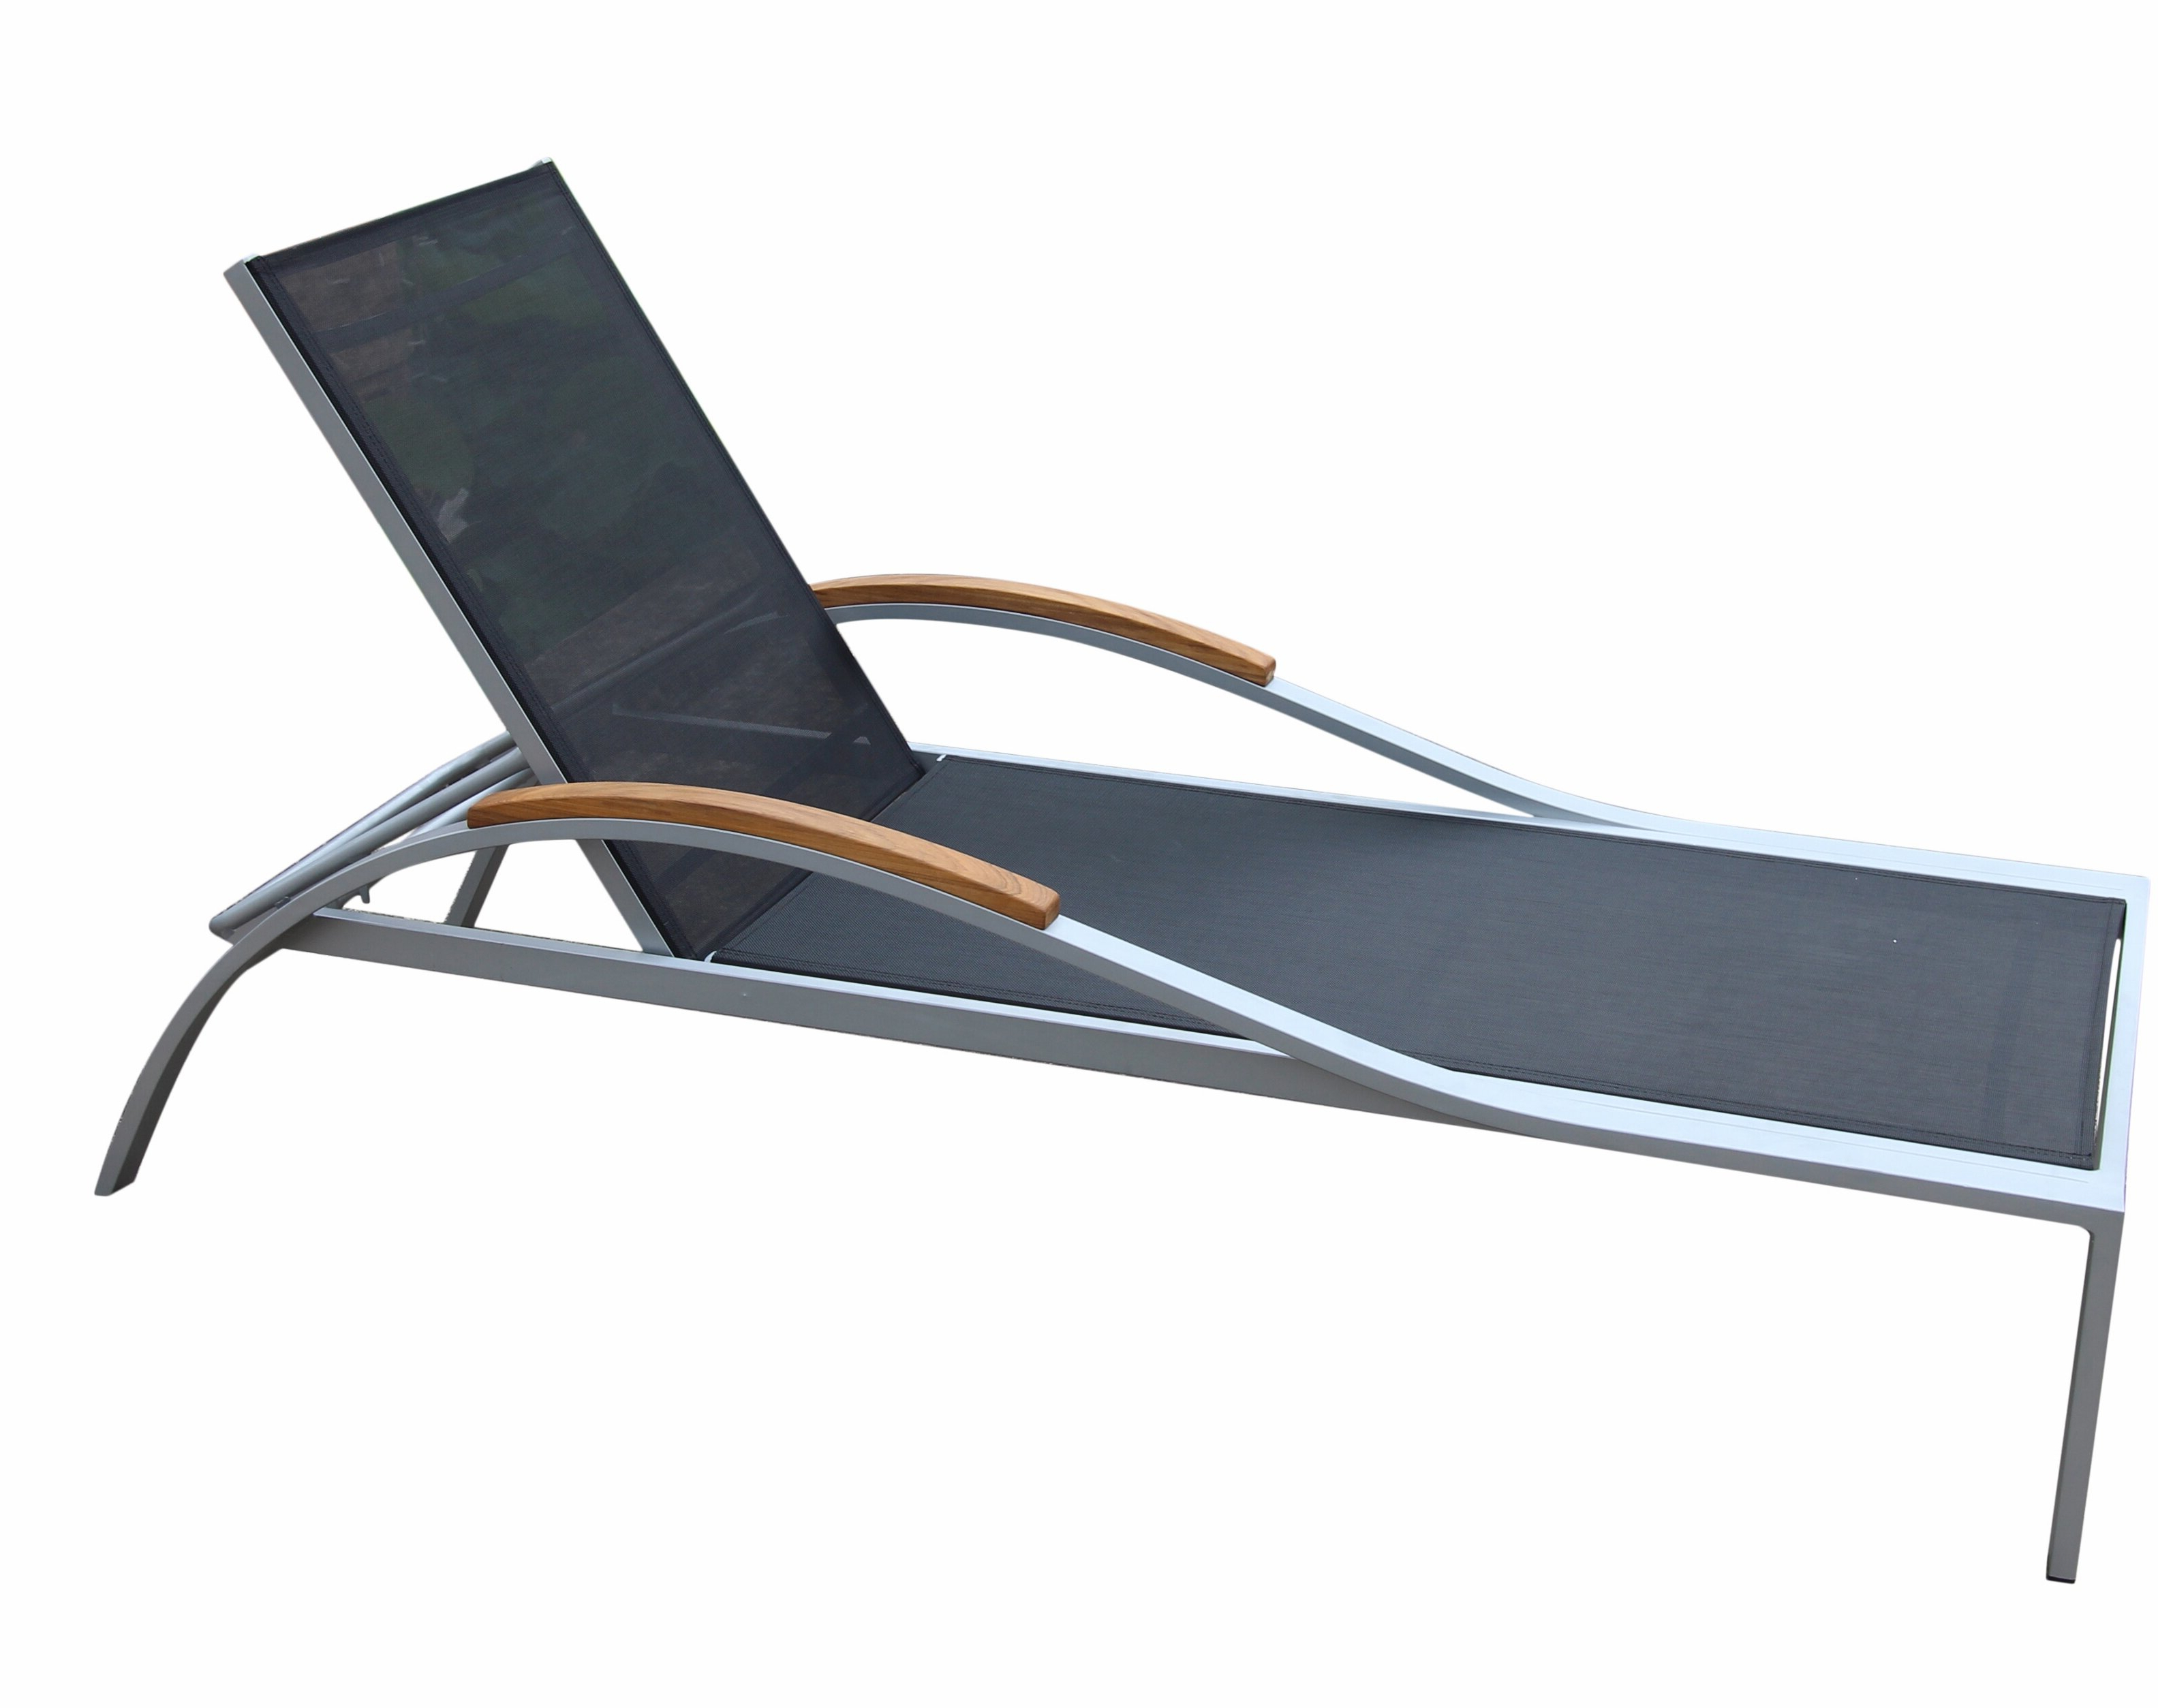 Reclining Sling Chaise Lounges For Well Known Dascomb Reclining Teak Chaise Lounge With Table (View 18 of 25)